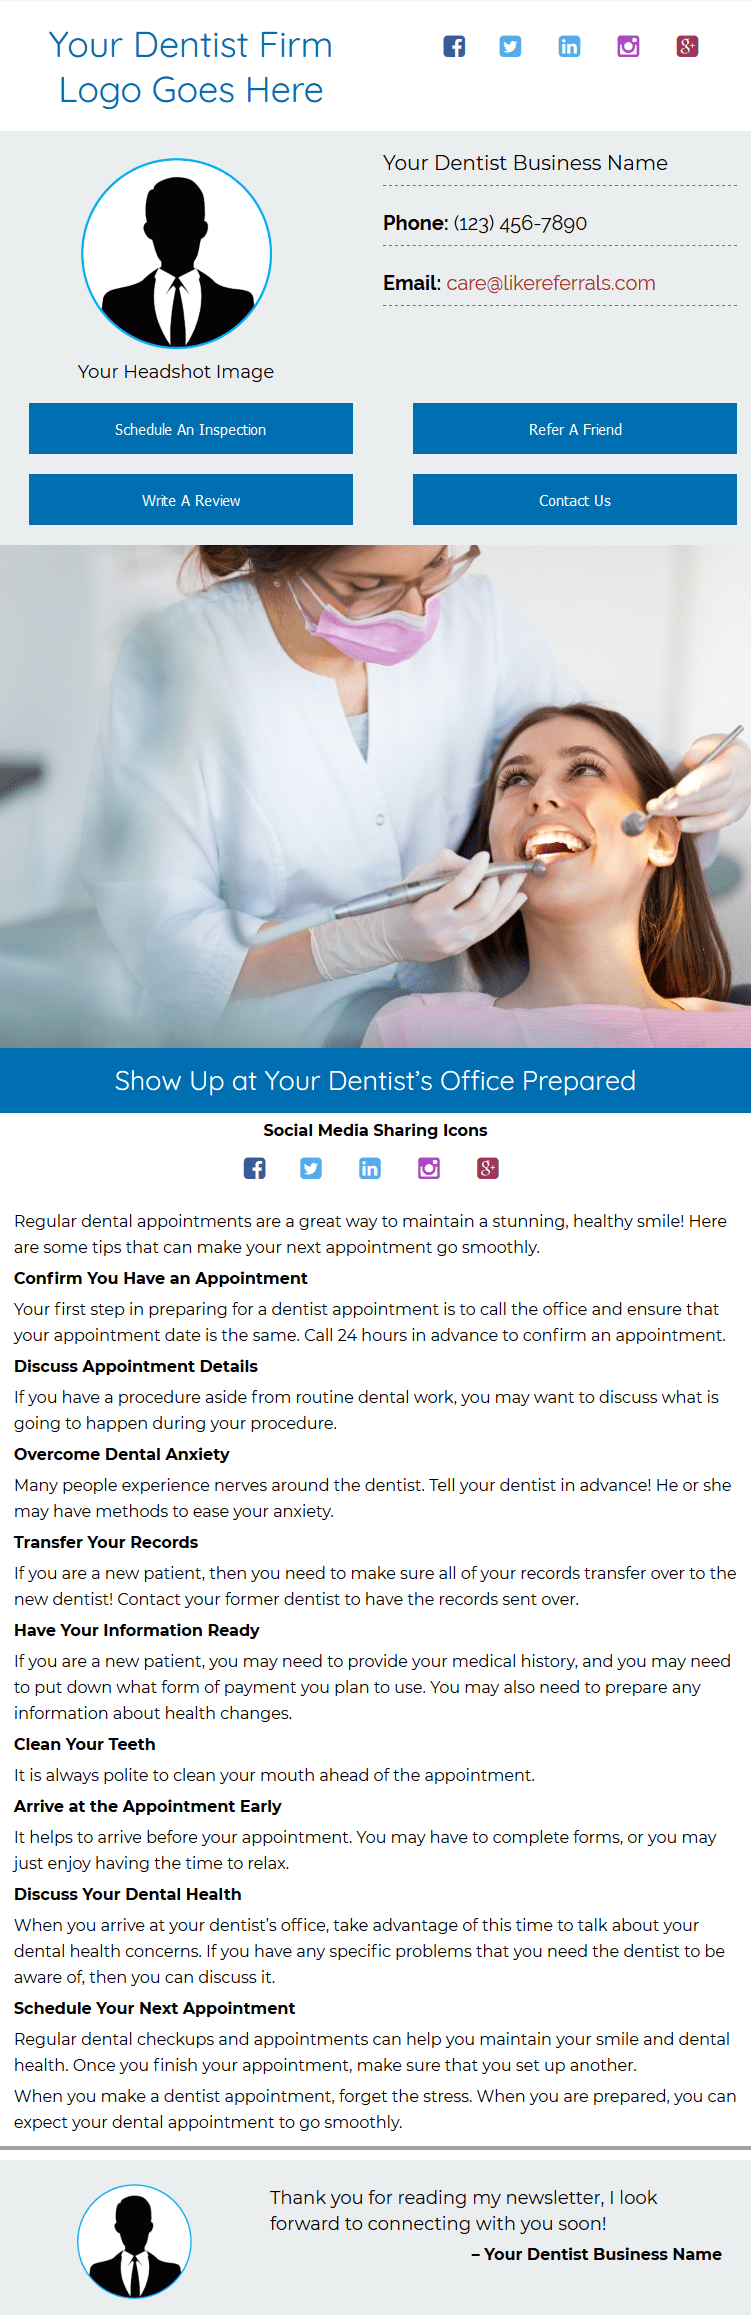 Email Newsletter Marketing Services For Dentists